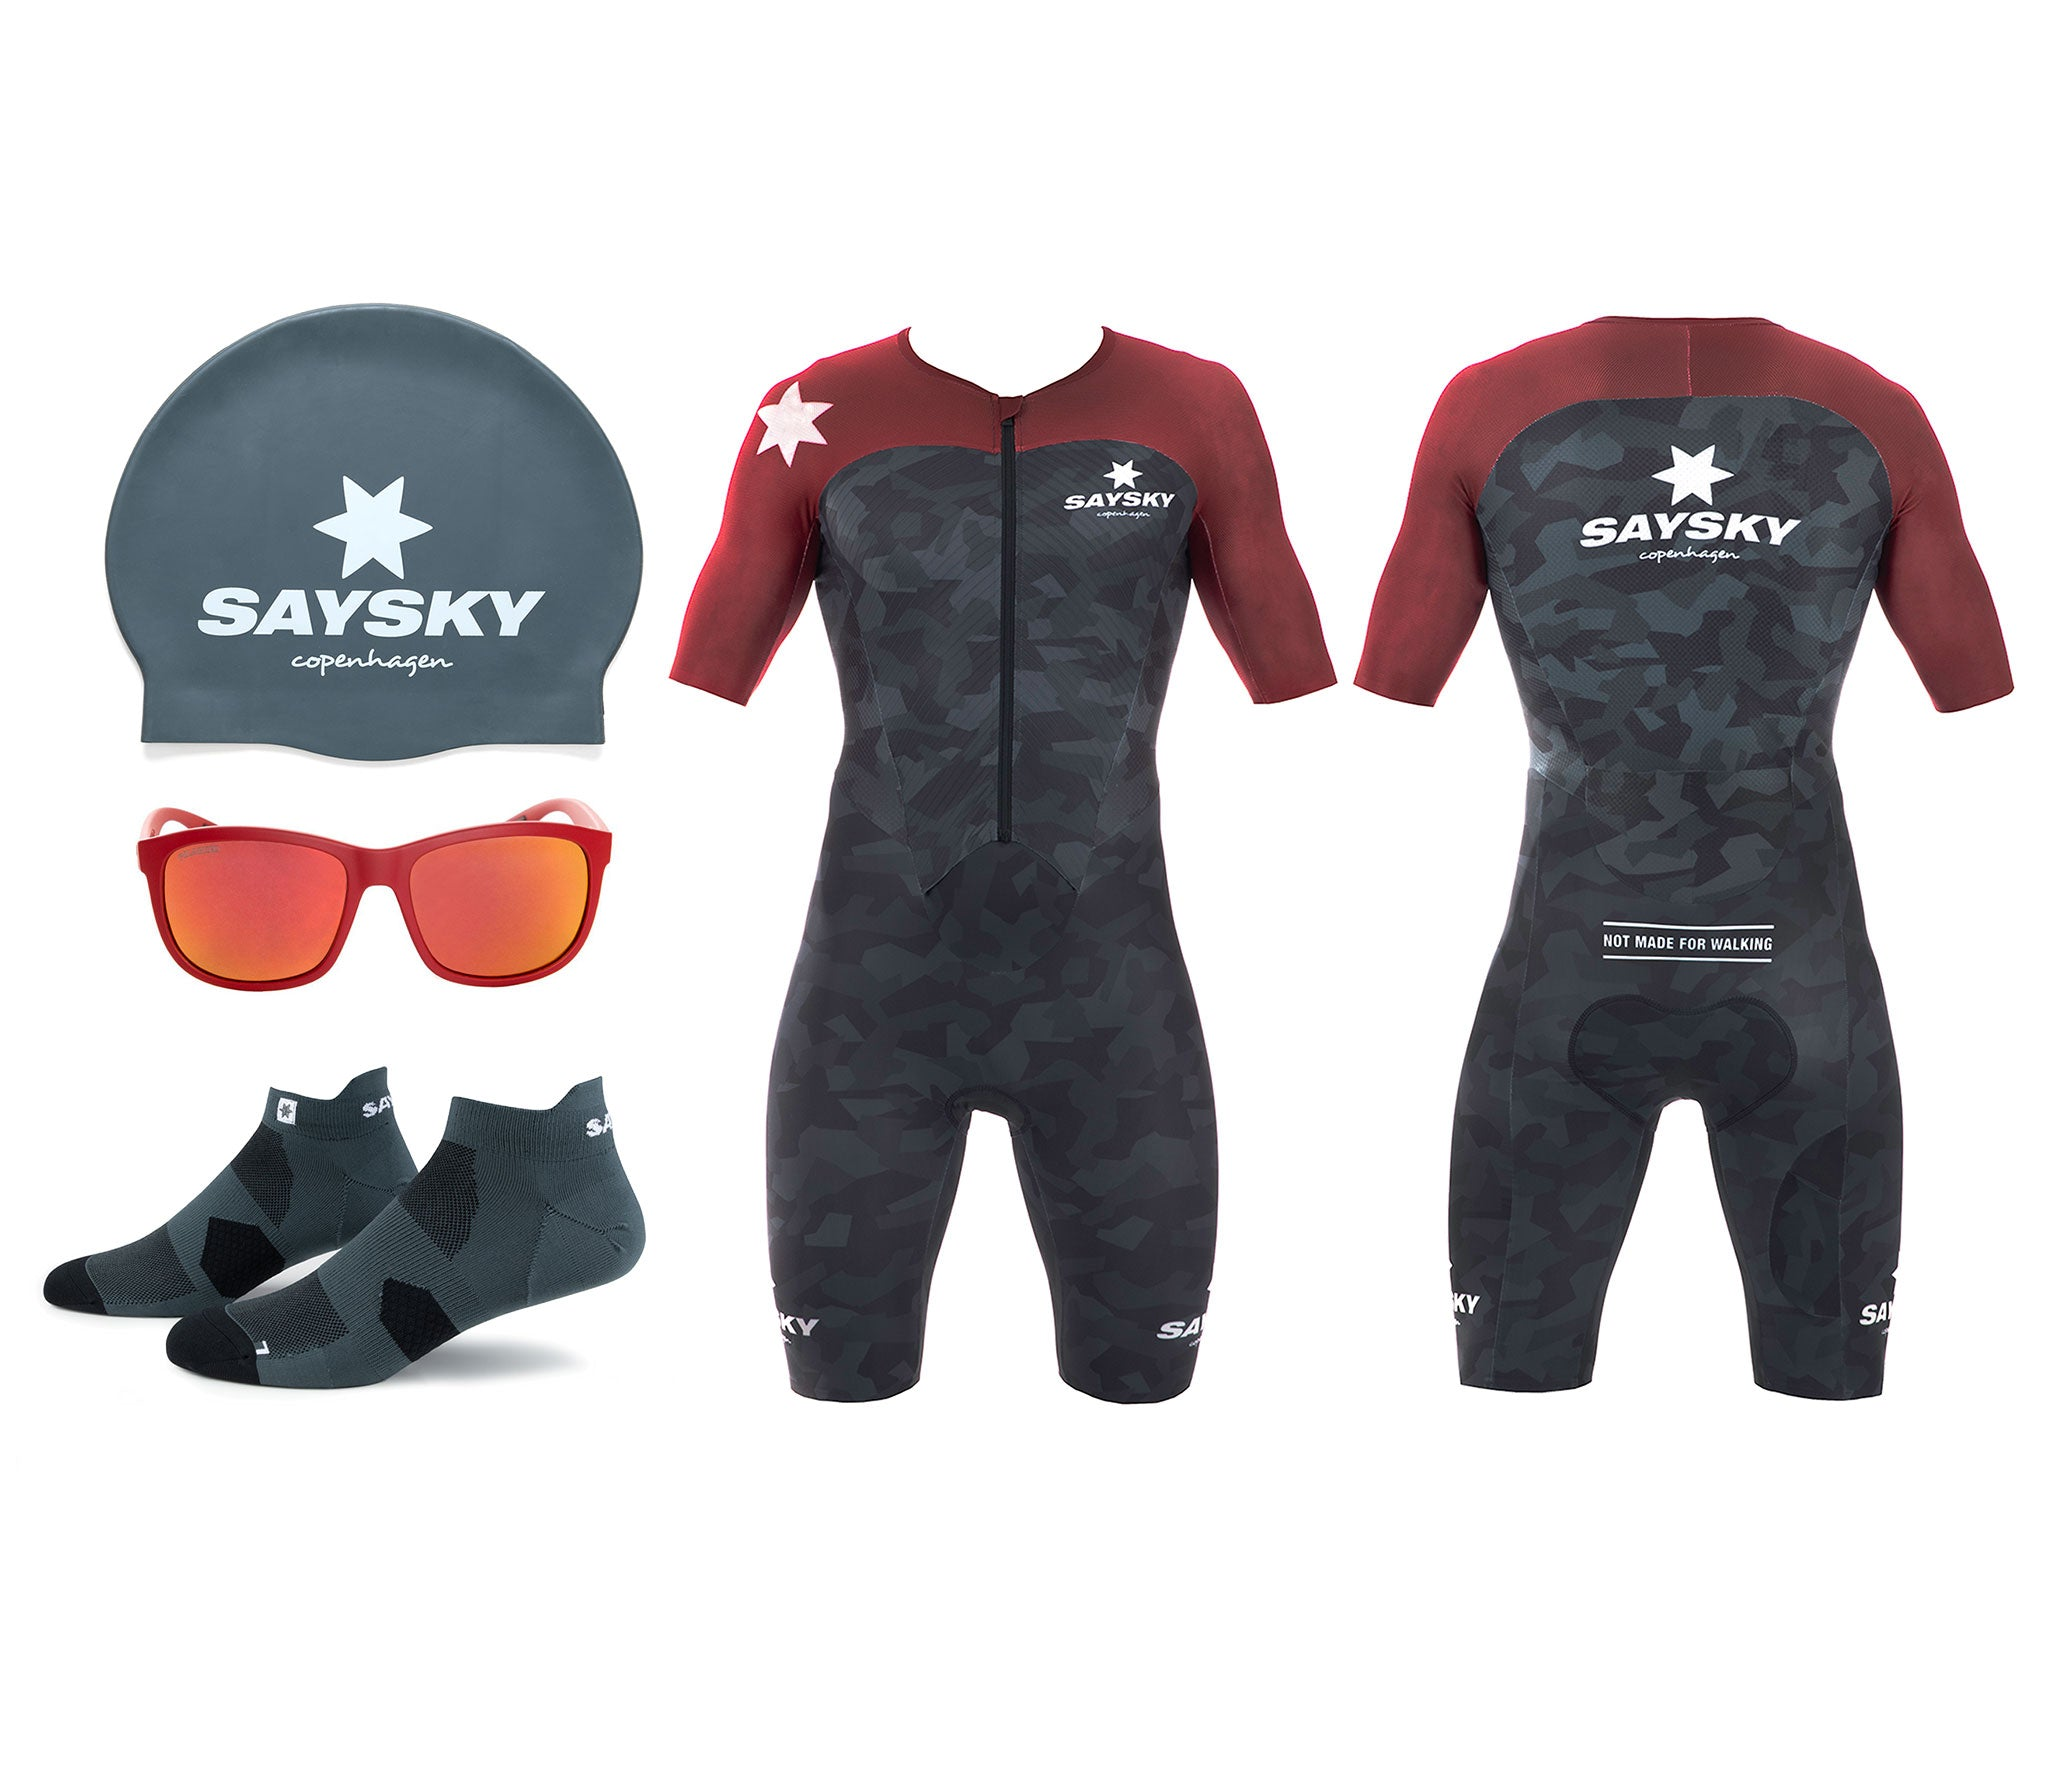 The SAYSKY Triathlete